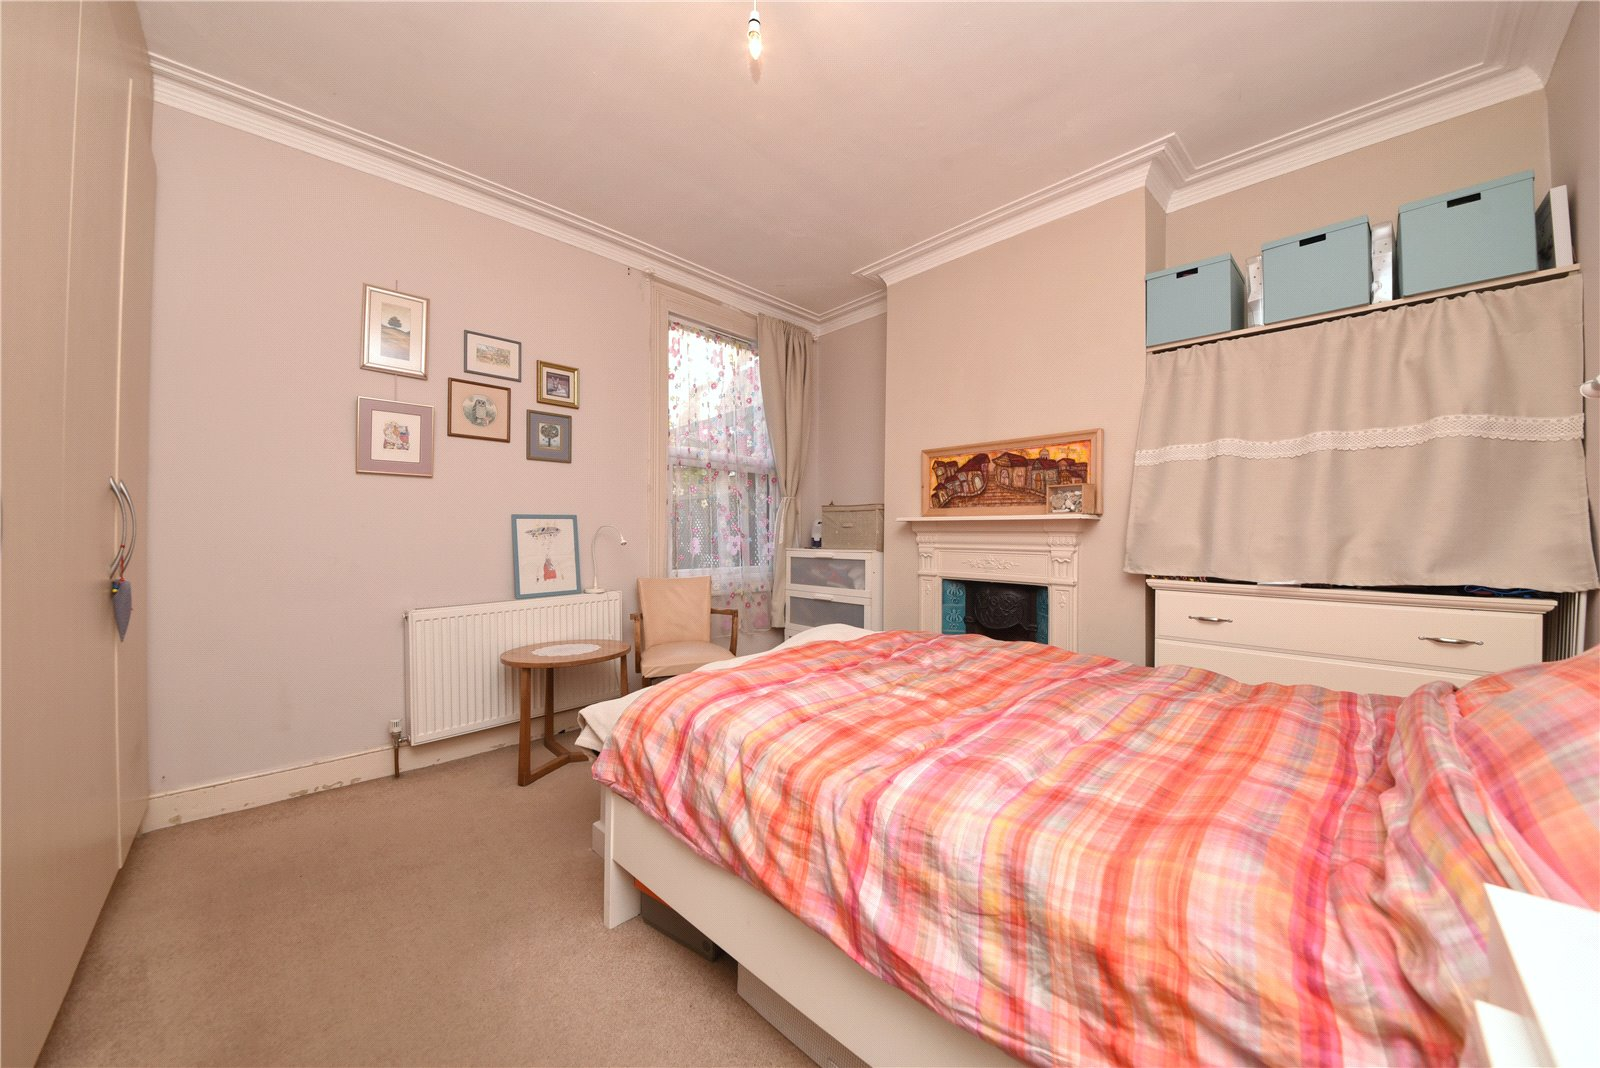 2 bed apartment for sale in East Finchley, N2 0SX 3